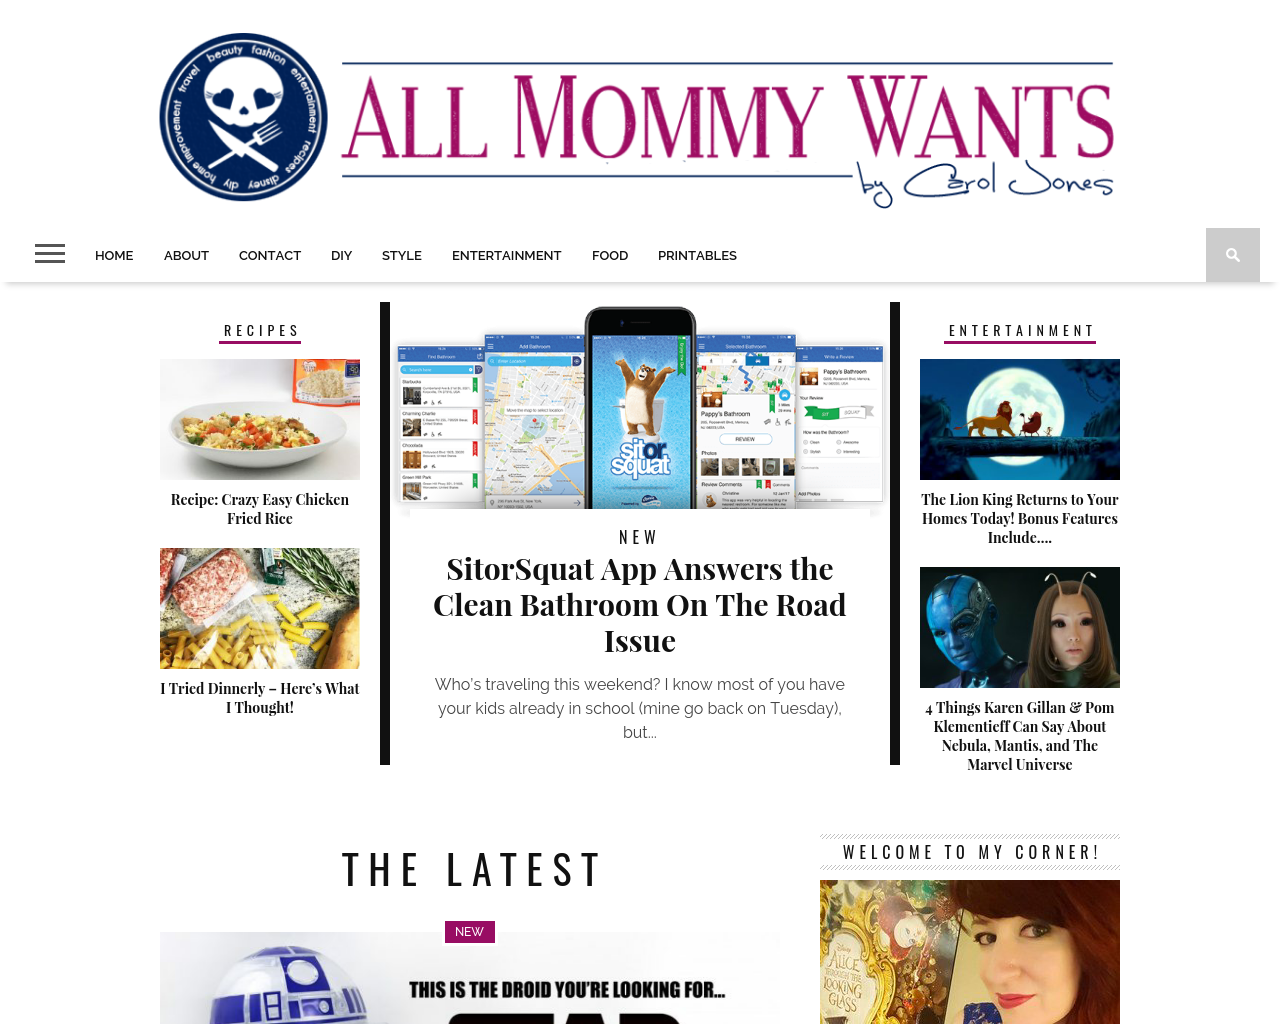 All-Mommy-Wants-Advertising-Reviews-Pricing